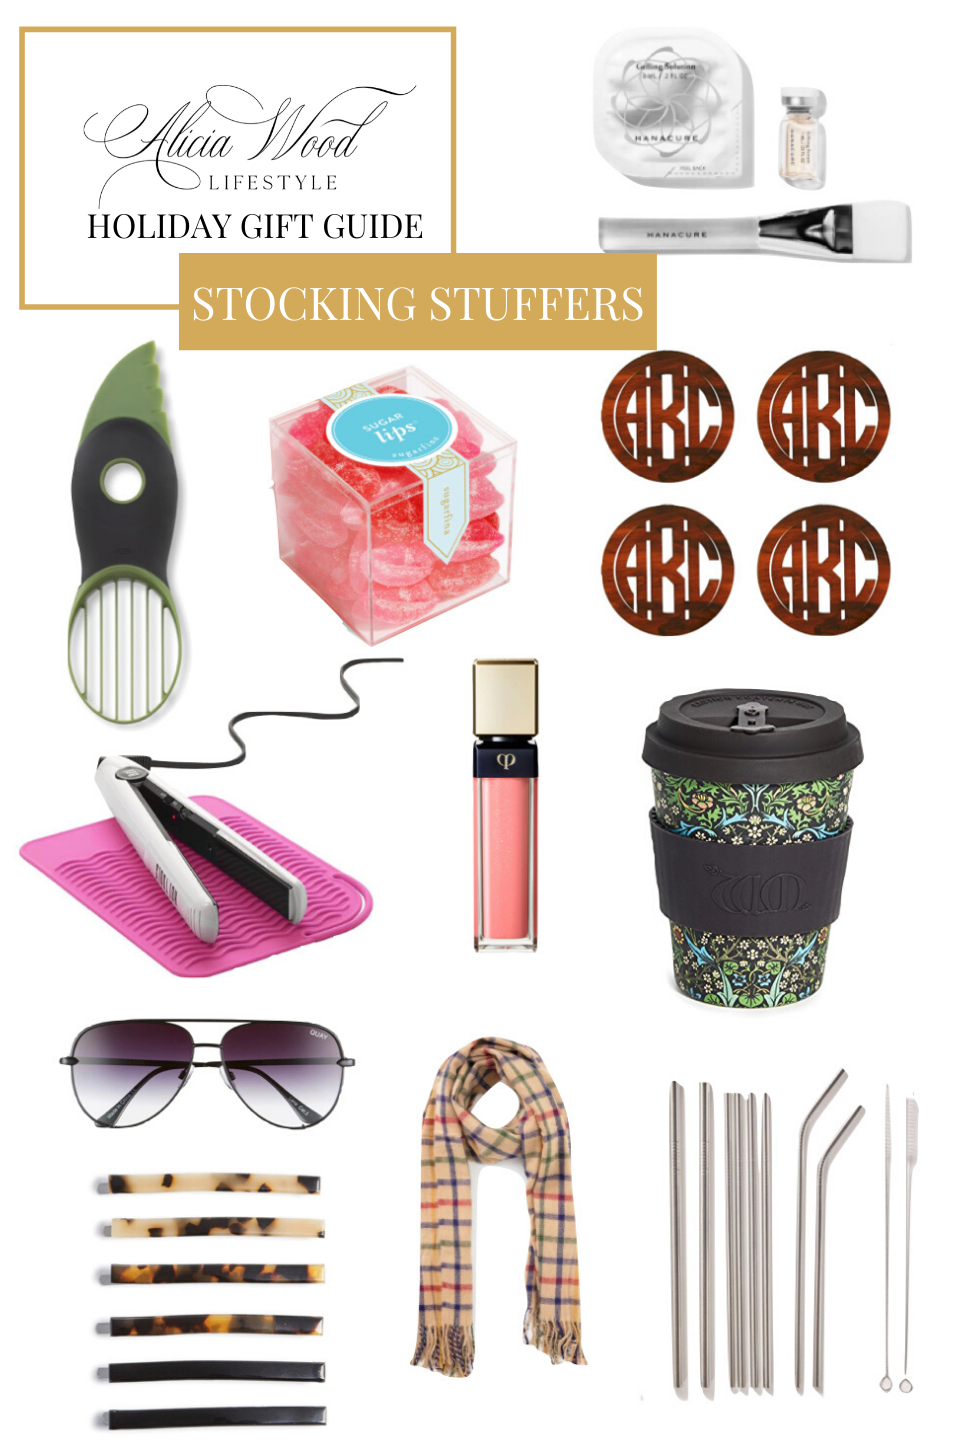 Gift Guide: Best Stocking Stuffer Ideas for All Ages + Shipping Deadlines!